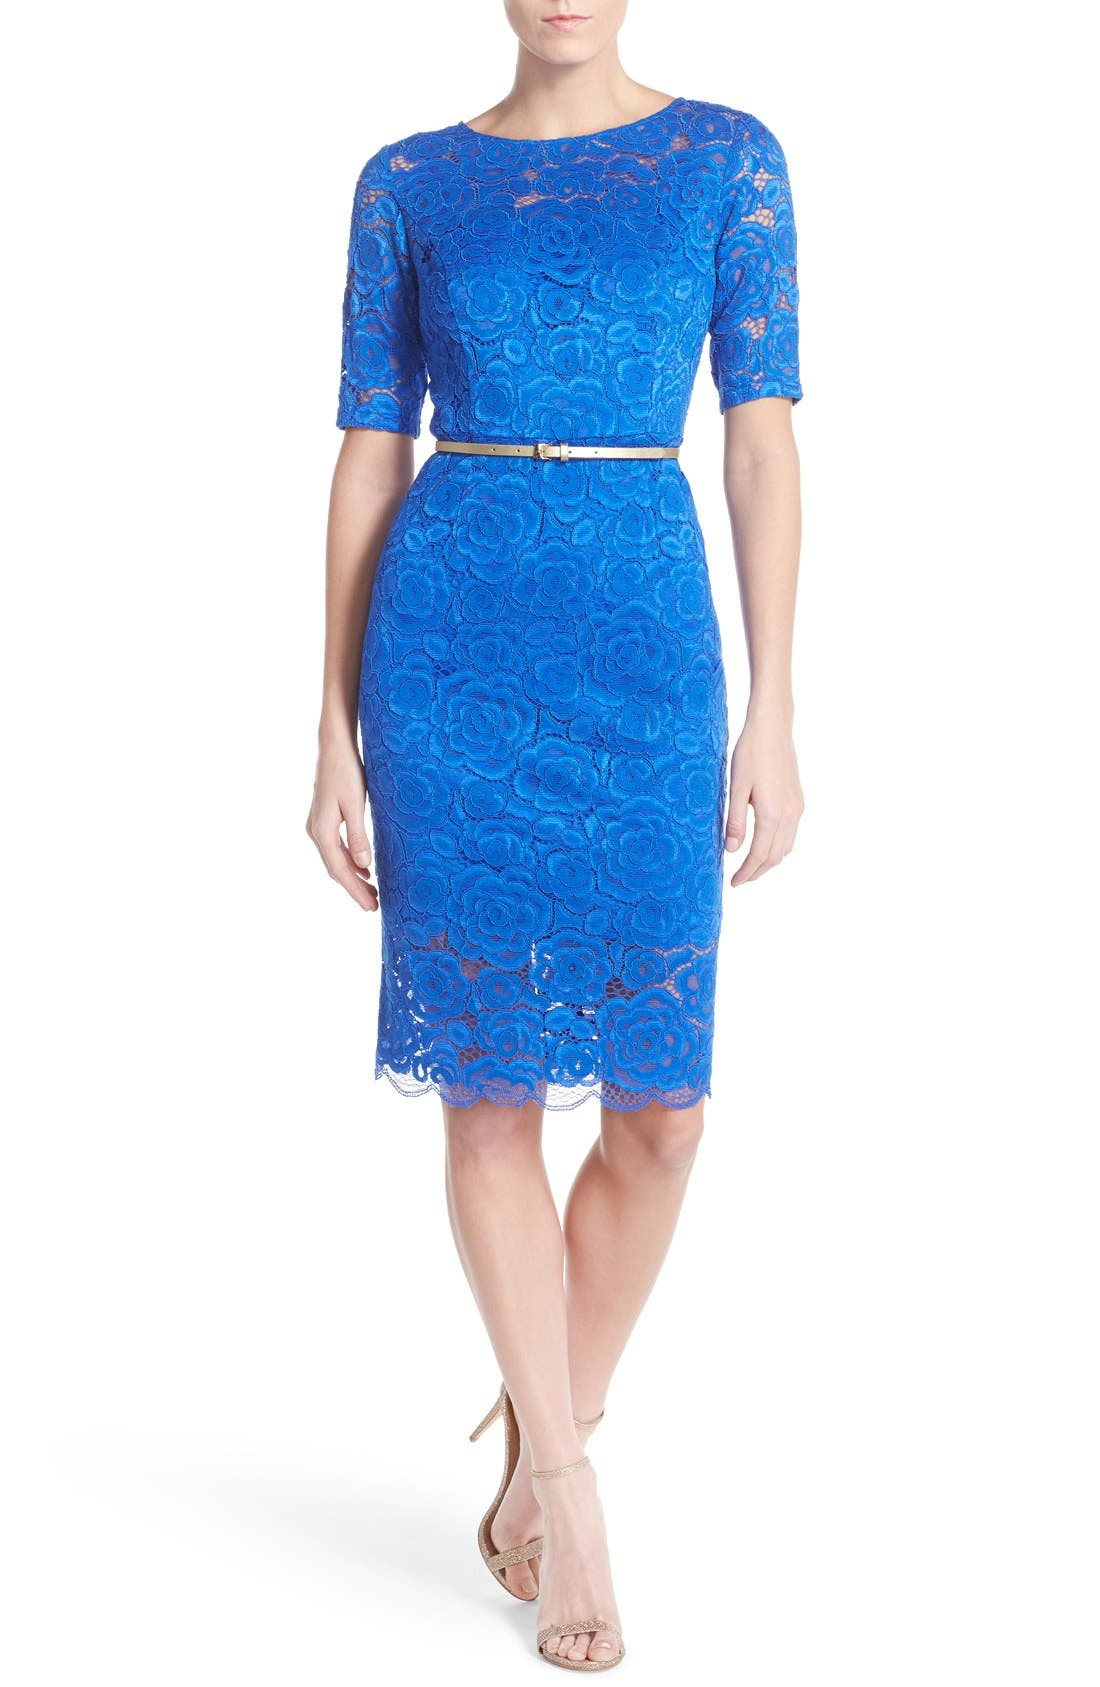 ELLEN TRACY Belted Lace Sheath Dress